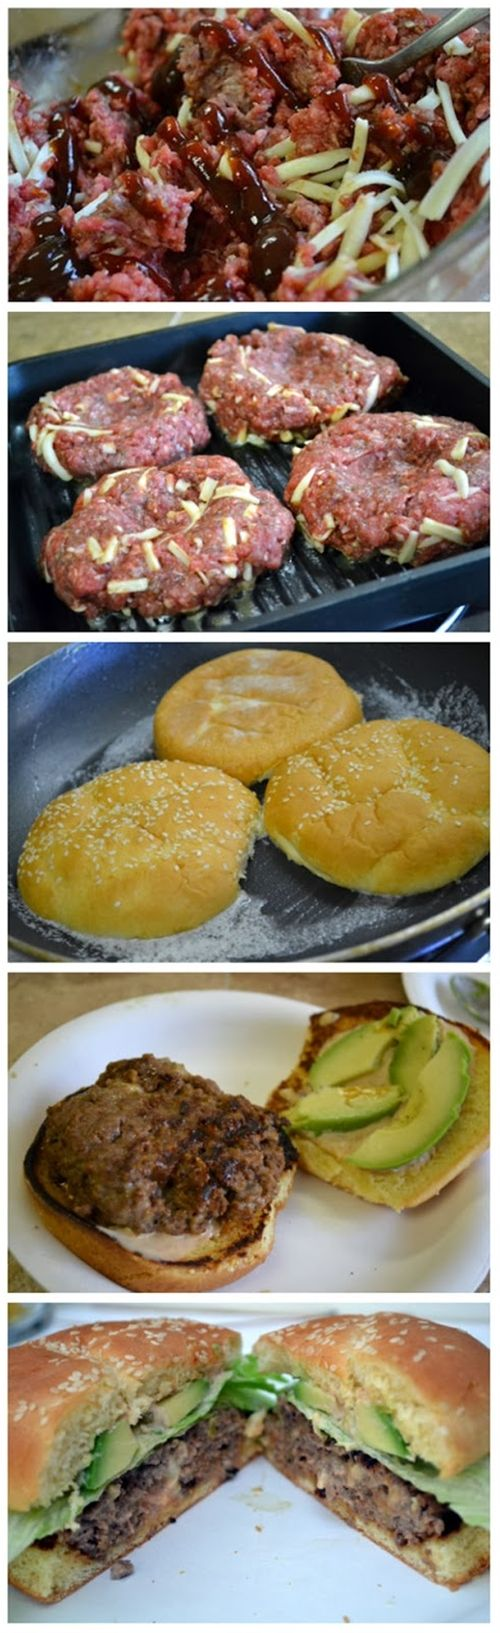 "KEEP -- ""I didn't want to buy any processed burger patties from the store so I made my own using this recipe and it was yummy! I was worried about the reviews of them falling apart, so I only used 2 TBSP of BBQ sauce and they turned out perfect! I cooked each side for about 6 mins on a grill pan. Definitely will be making this again! - MJ"" -- Quick & Easy Homemade Burger Patties"